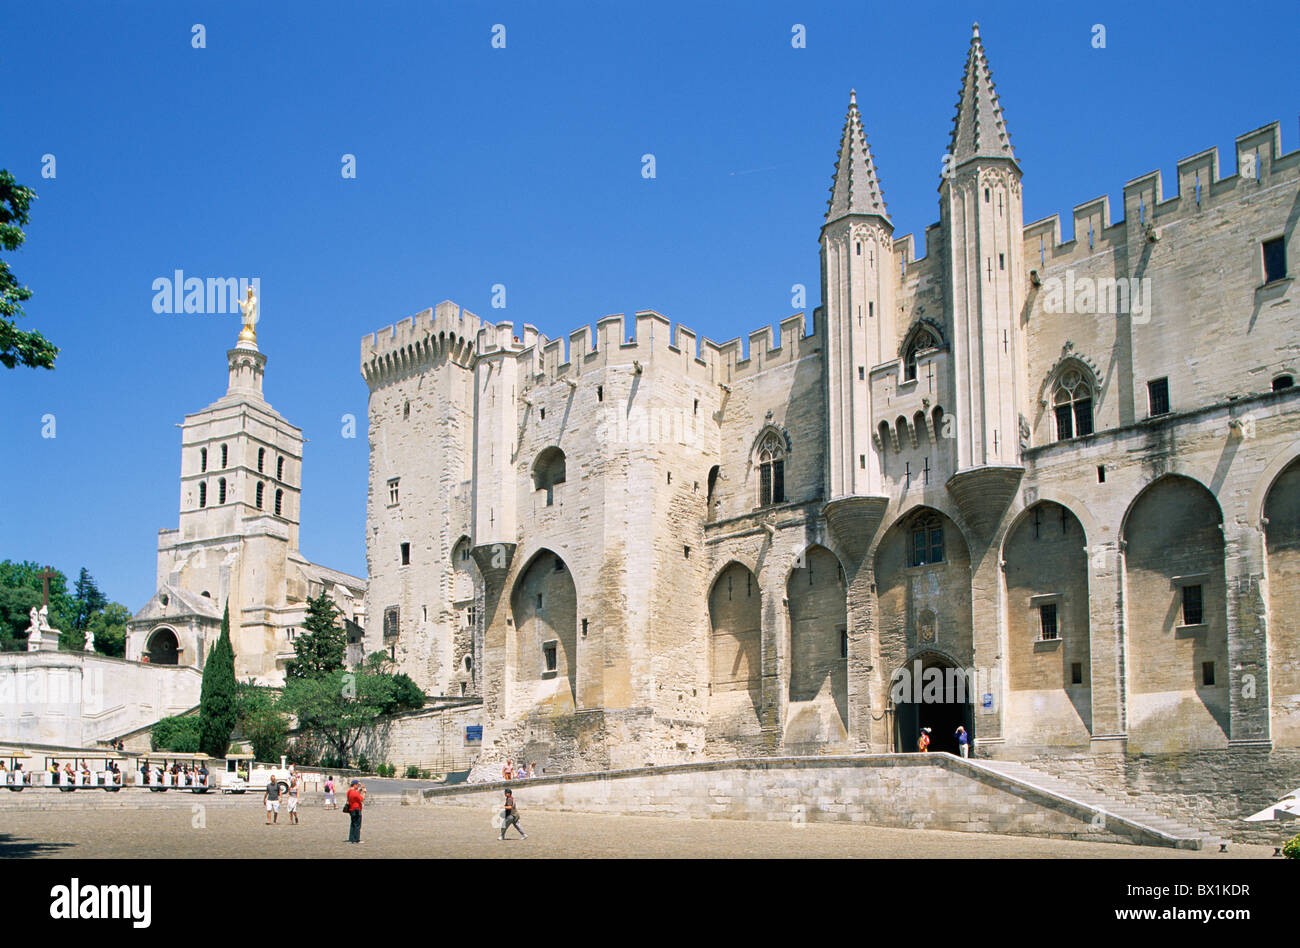 14th Century Architecture Avignon France Europe Gothic La Place Du Palais Middle Ages Palace Square Palais - Stock Image